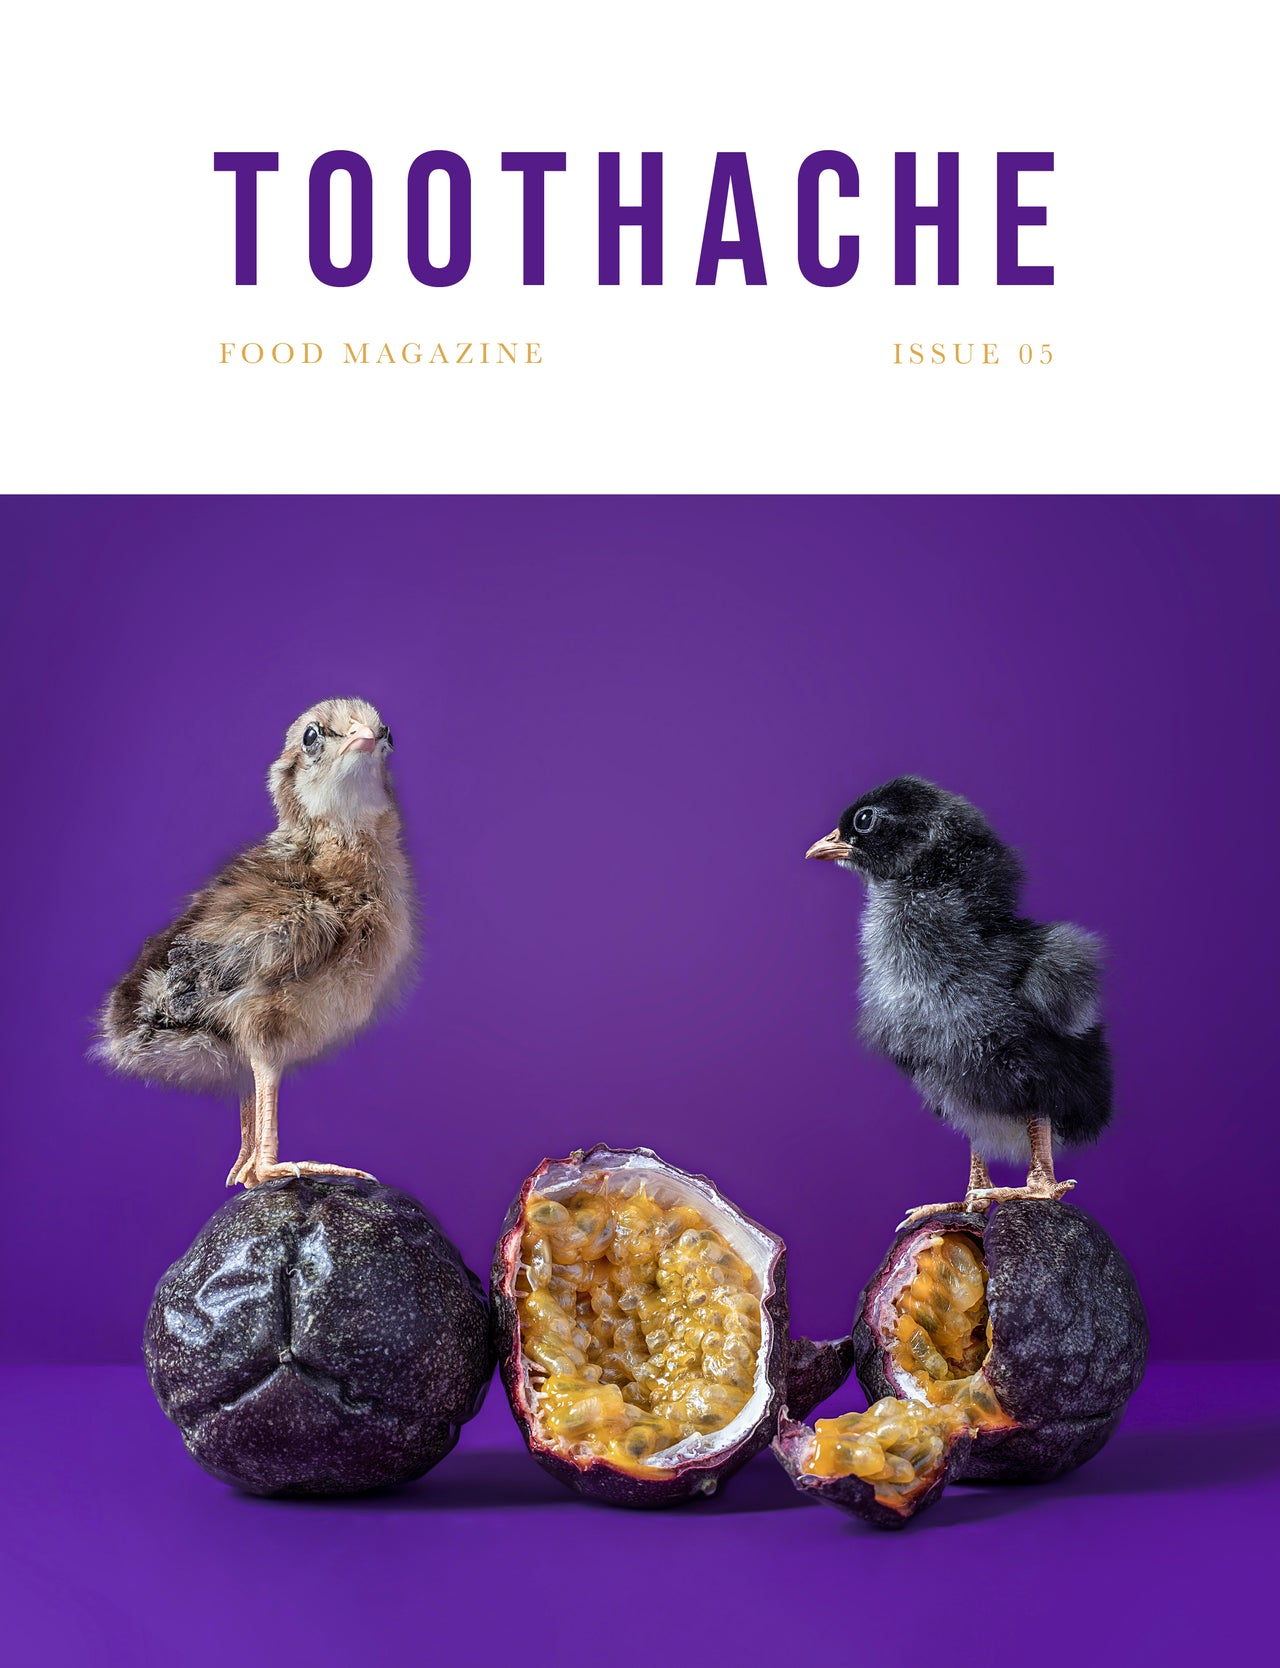 Toothache Magazine issue 5 cover